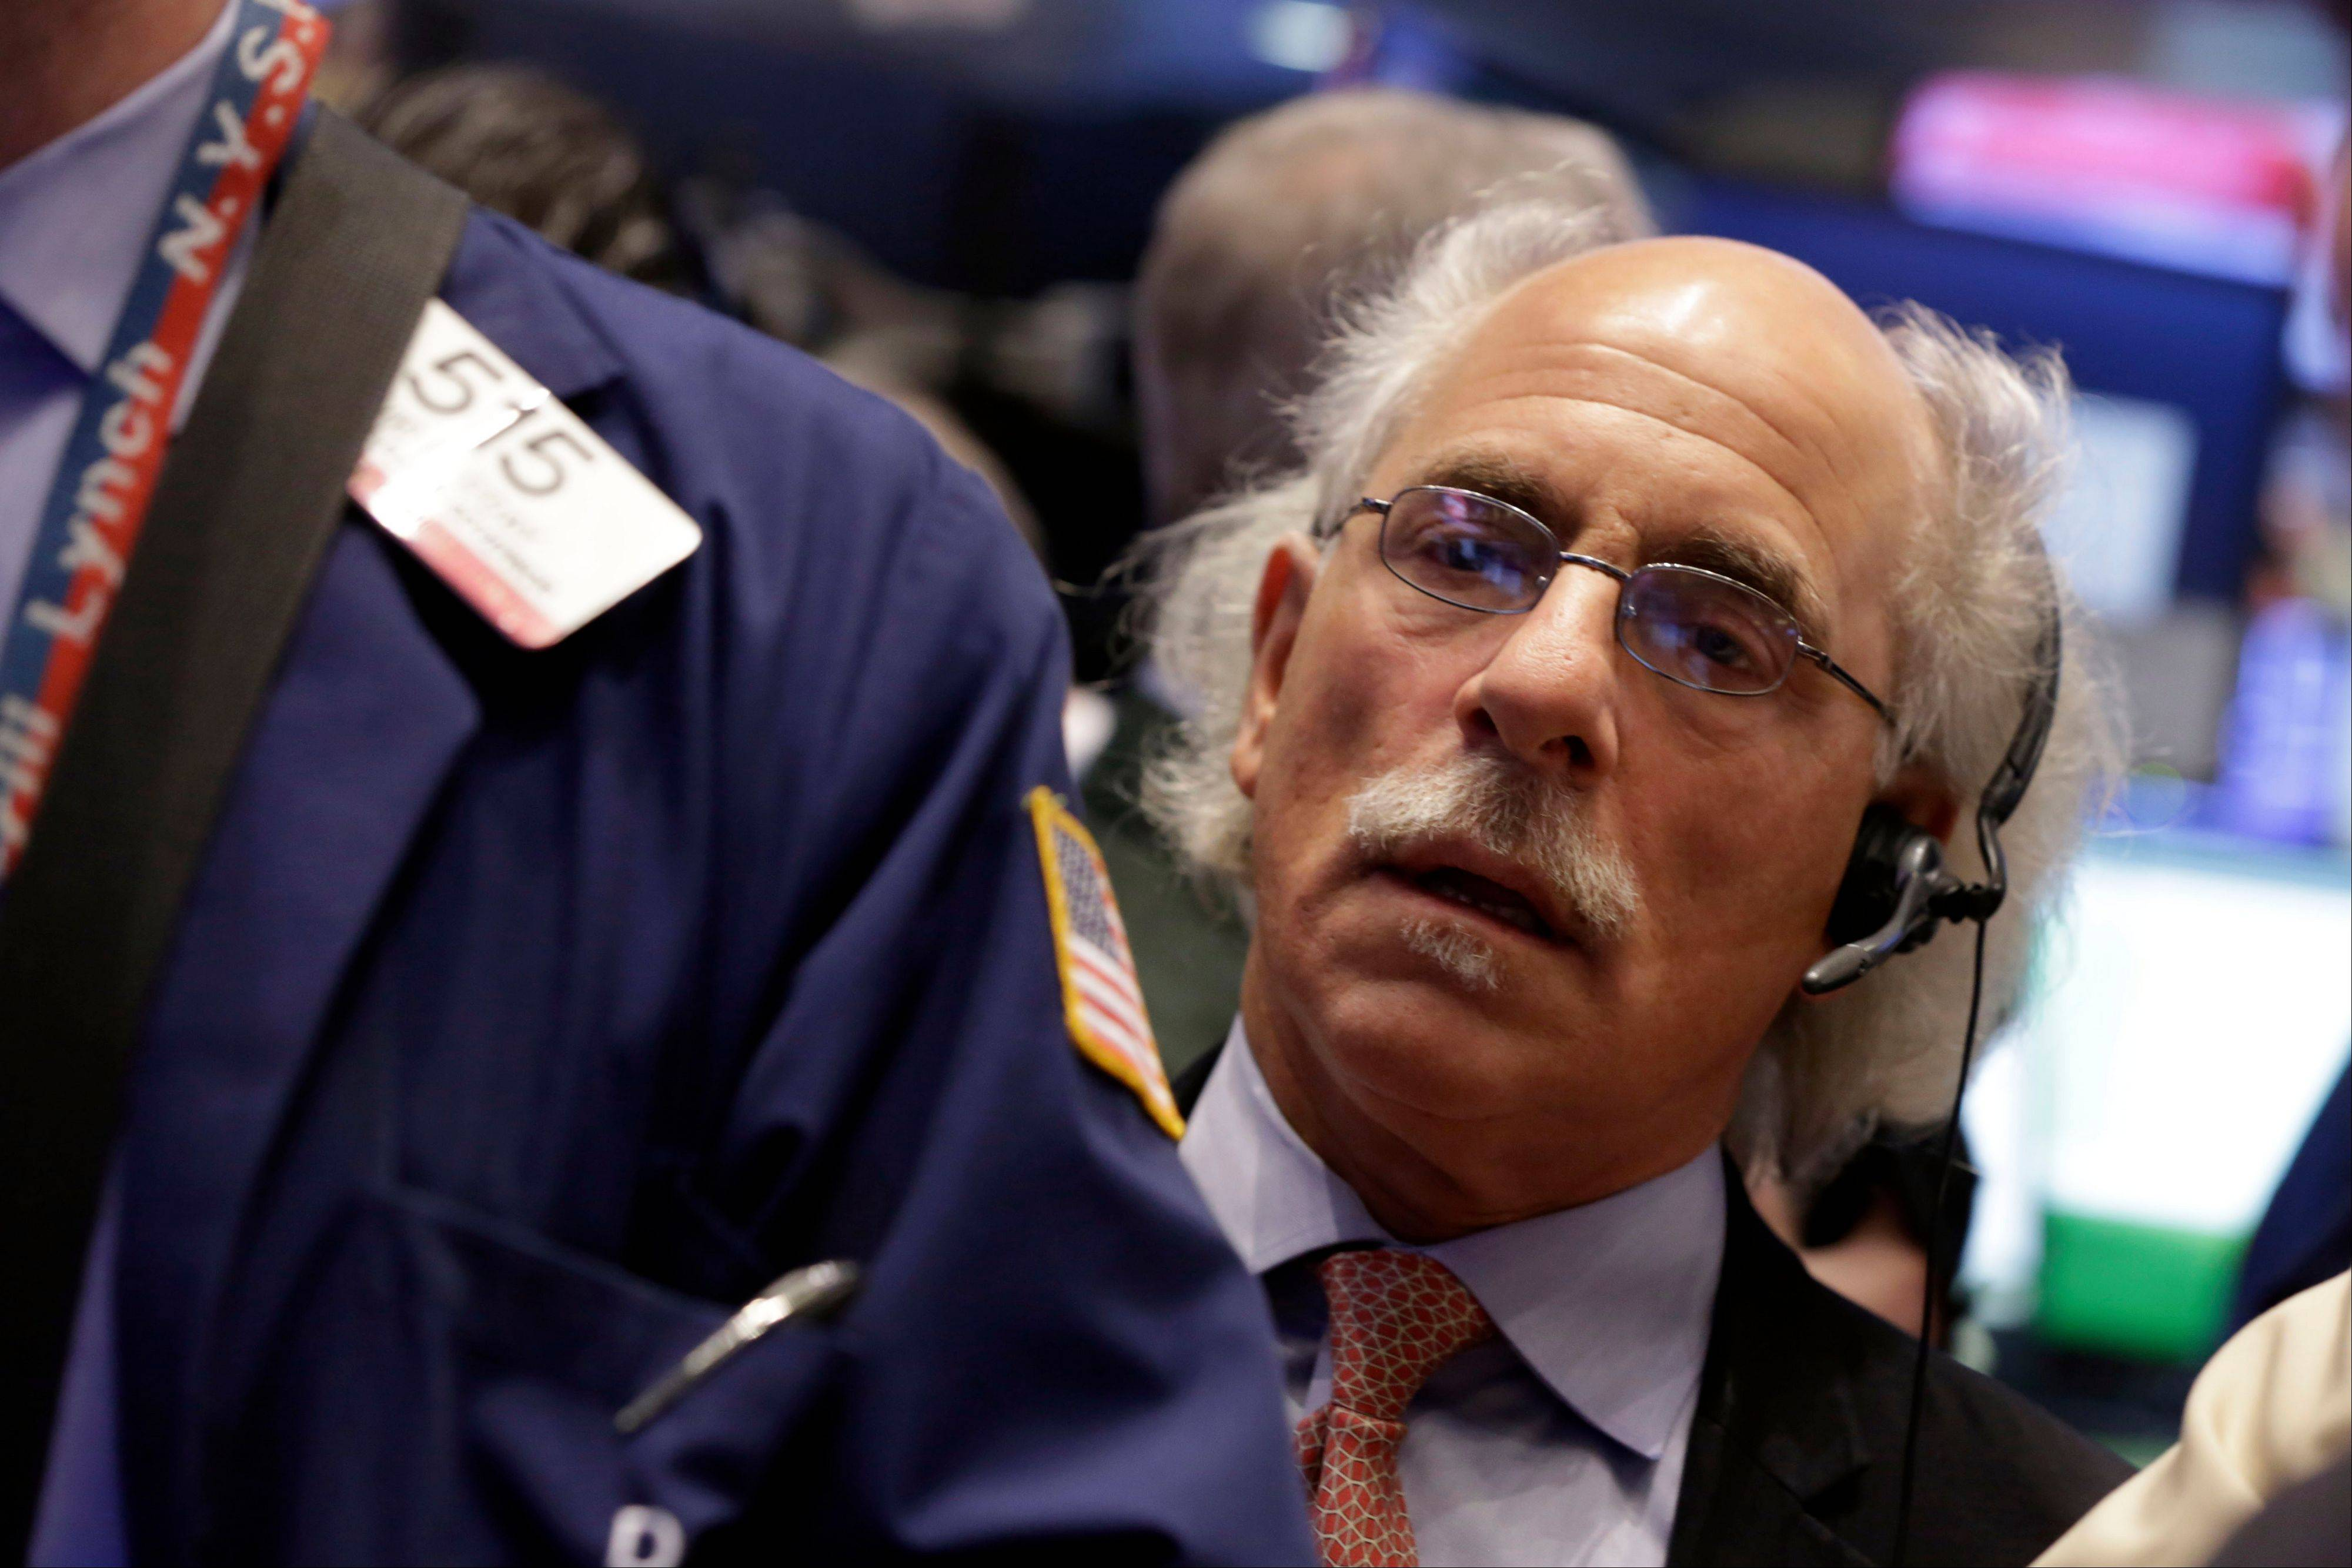 Stocks were little changed Monday, after the Standard & Poor's 500 Index reached an all-time high last week and headed toward its biggest annual gain since 1997.